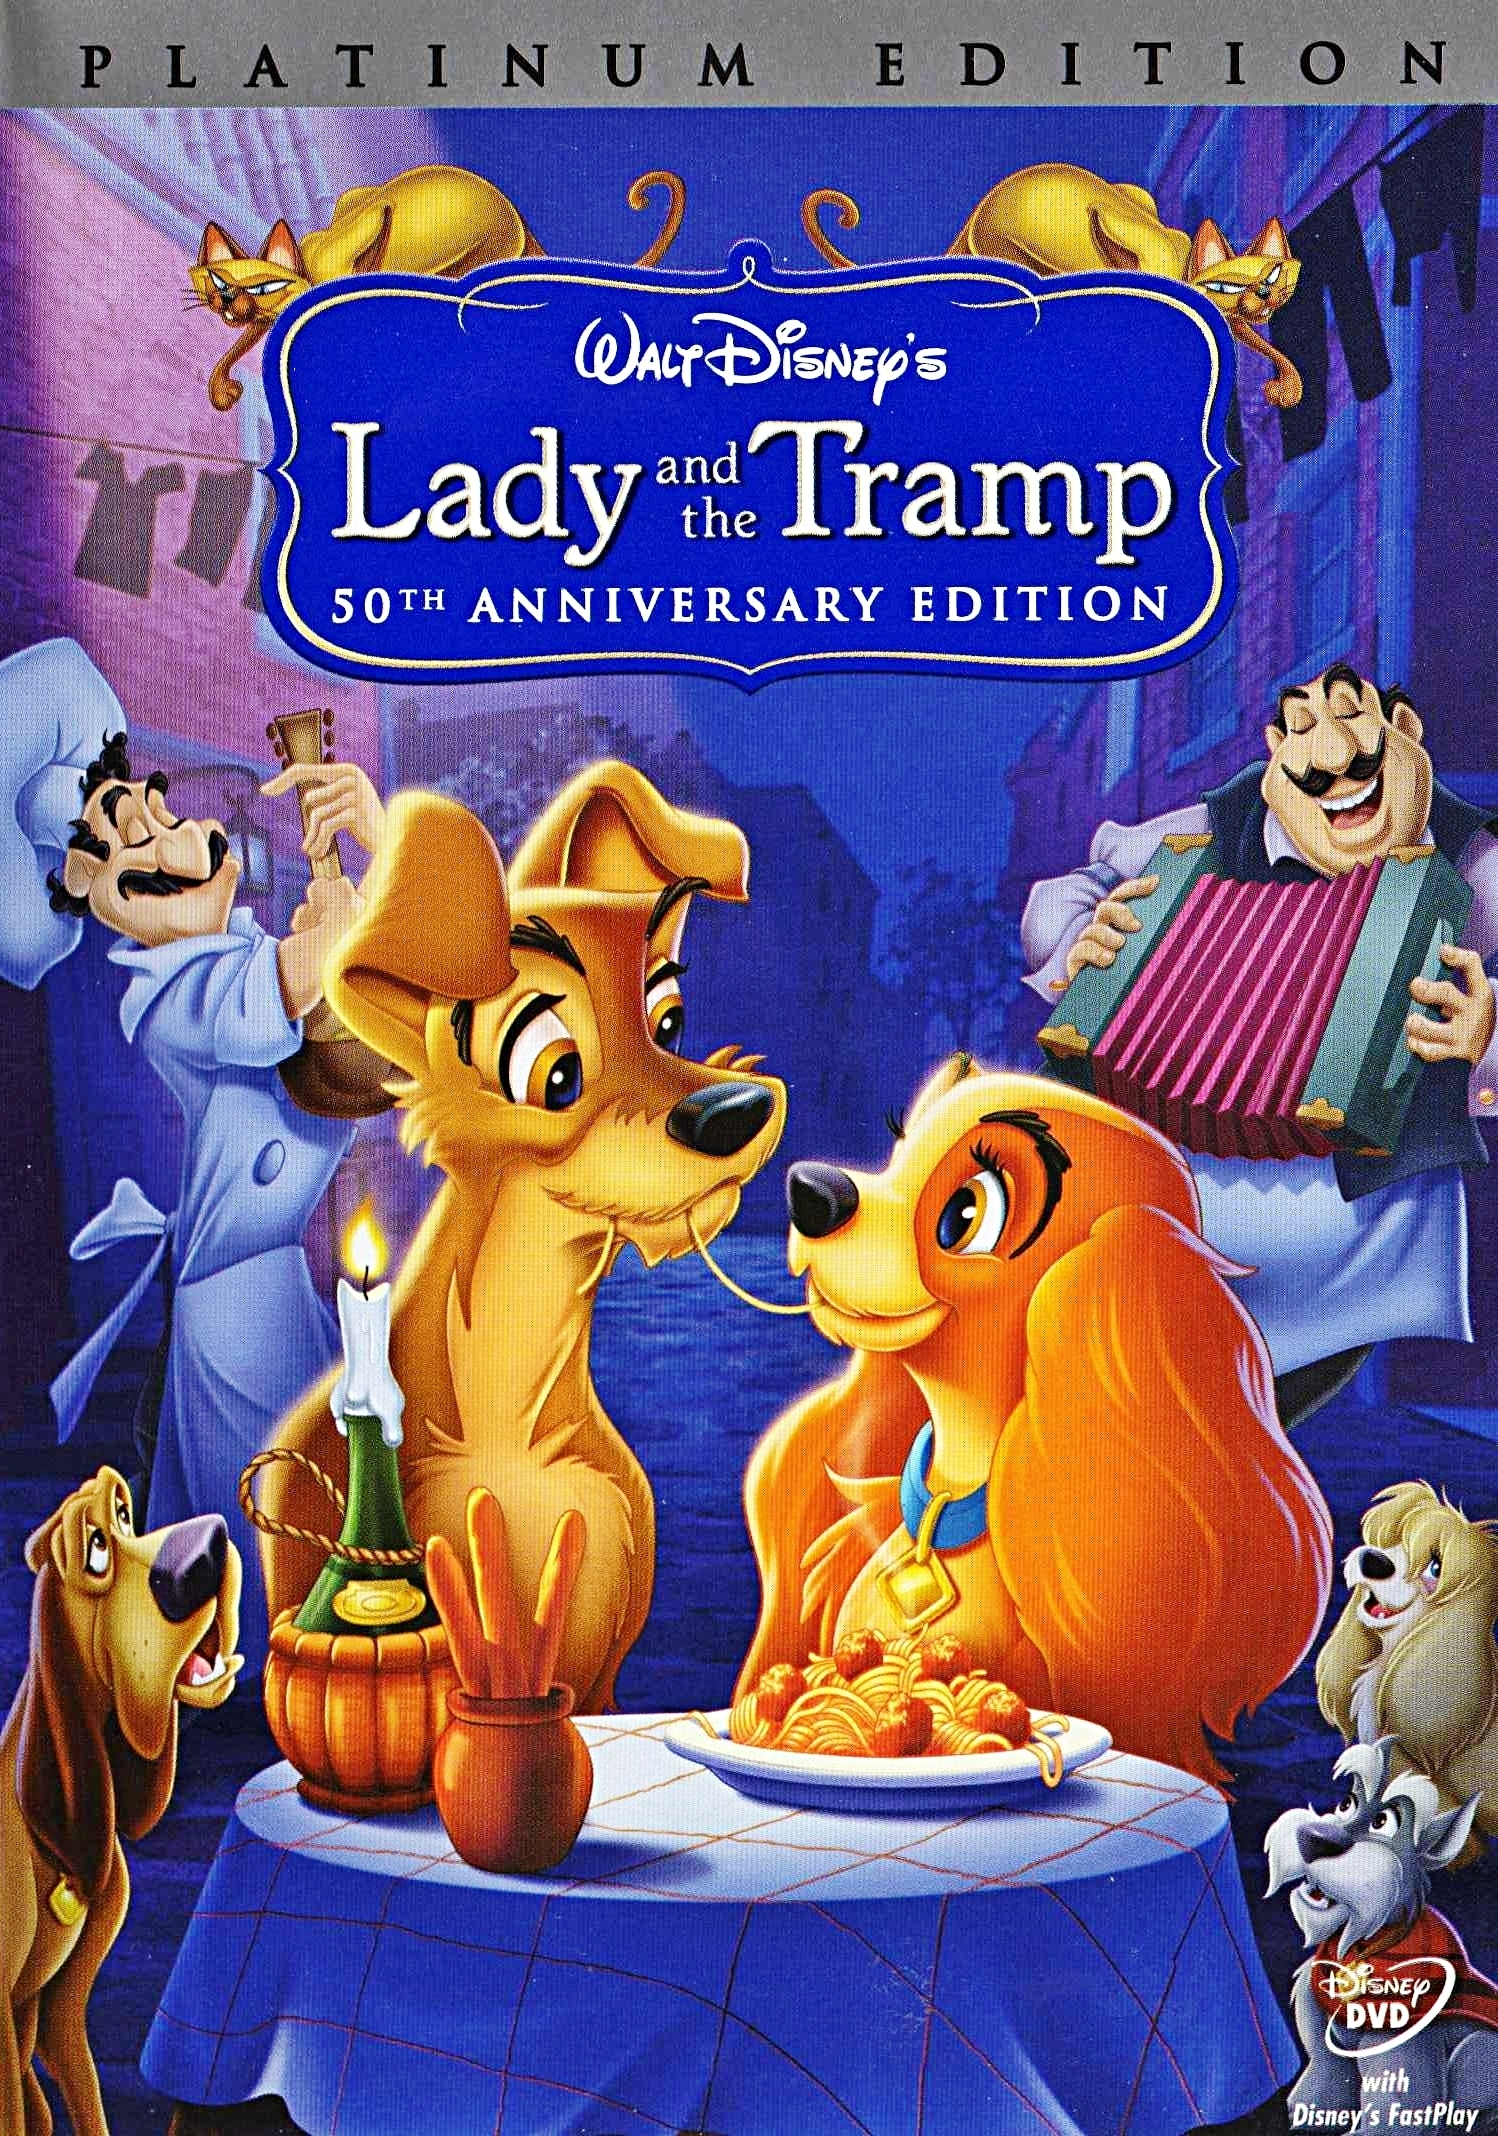 lady and the tramp Footloose and leash-free animated adventure of a pampered cocker spaniel who falls in love with a mutt from the wrong side of the tracks.